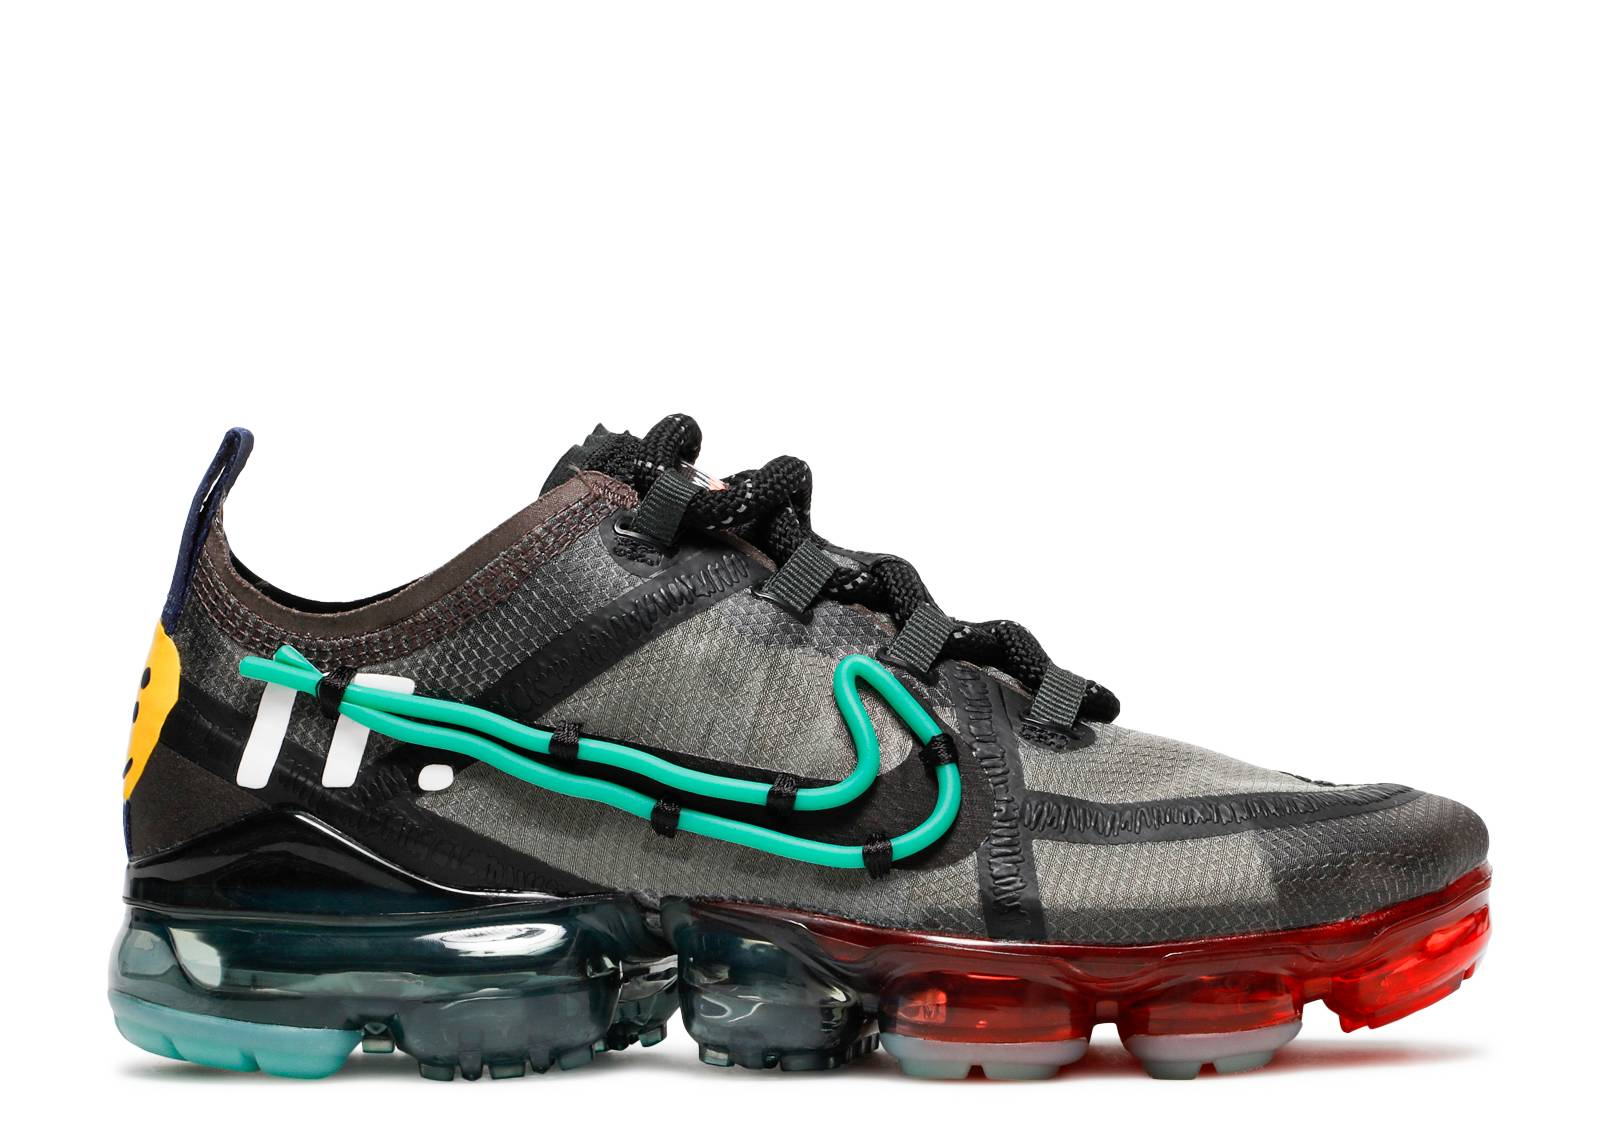 detailed look 7d0c3 27b07 Vapormax - Nike Running - Nike | Flight Club